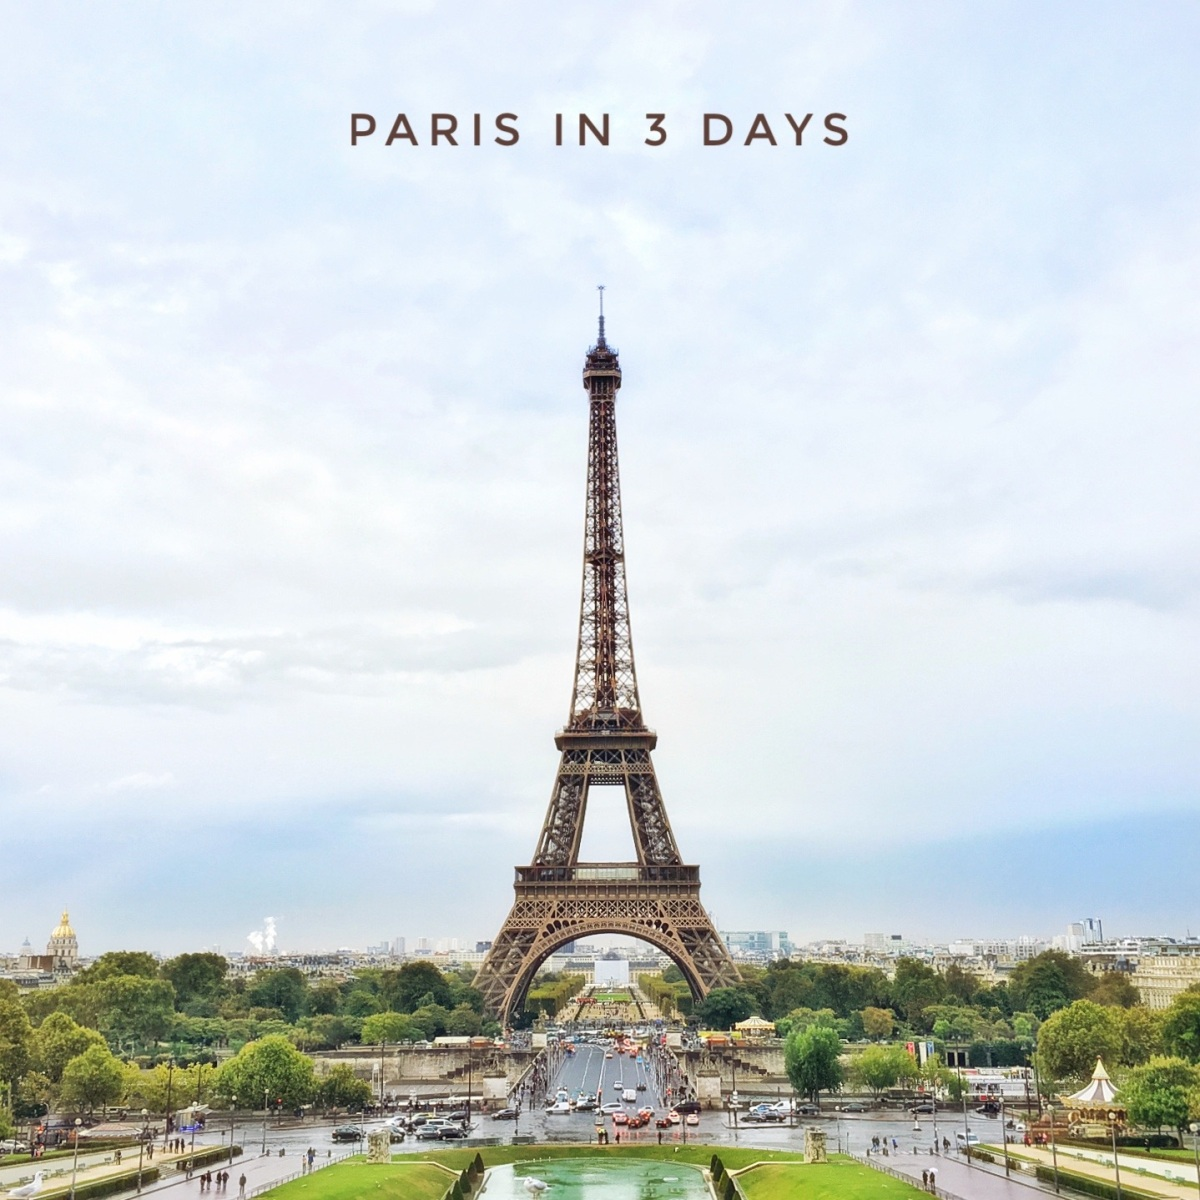 Paris in 3 Days